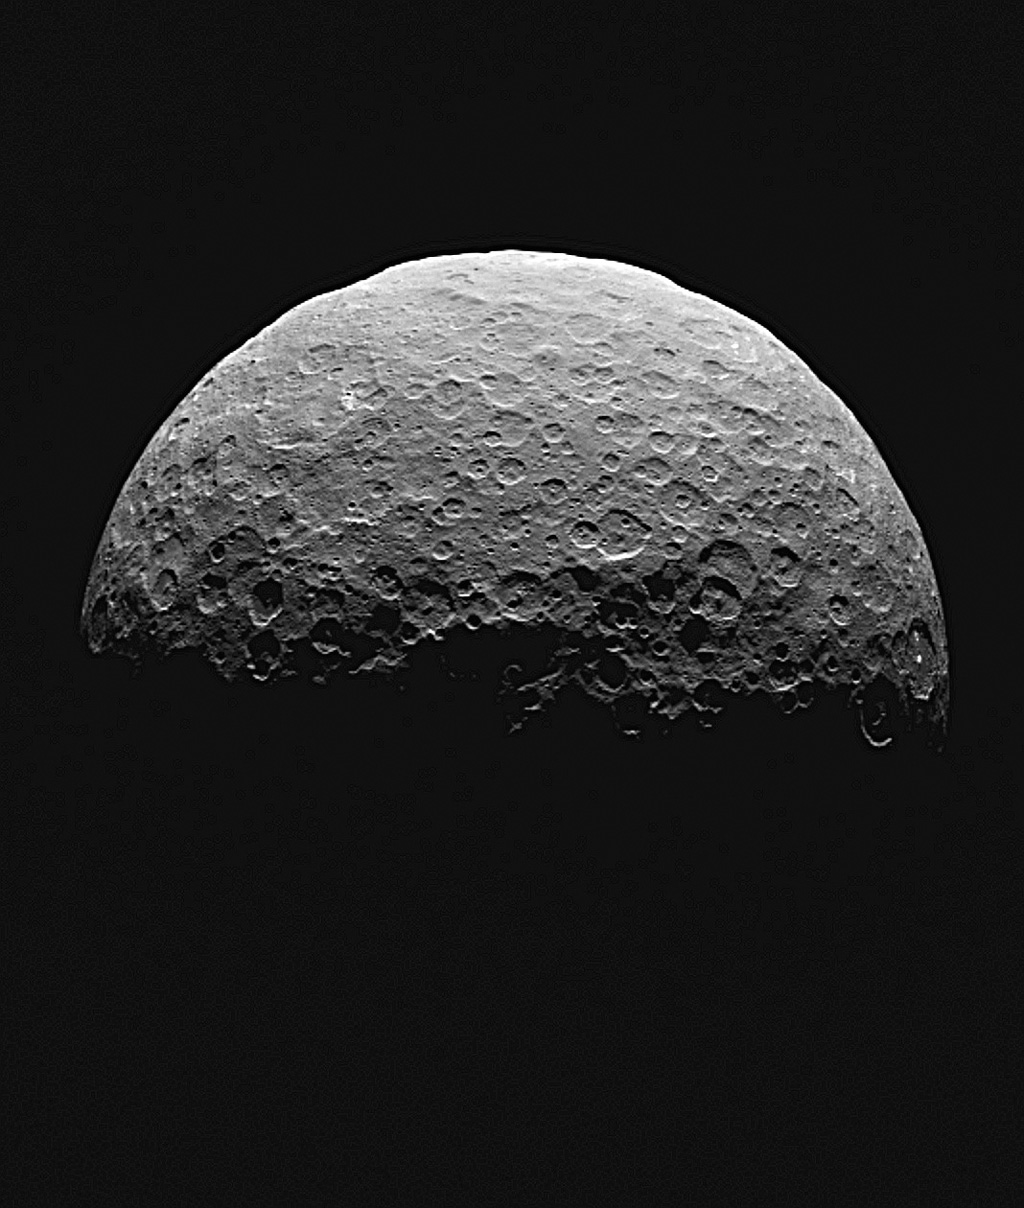 This frame from an animated sequence of images shows northern terrain on the sunlit side of dwarf planet Ceres as seen by NASA's Dawn spacecraft on April 14 and 15, 2015.